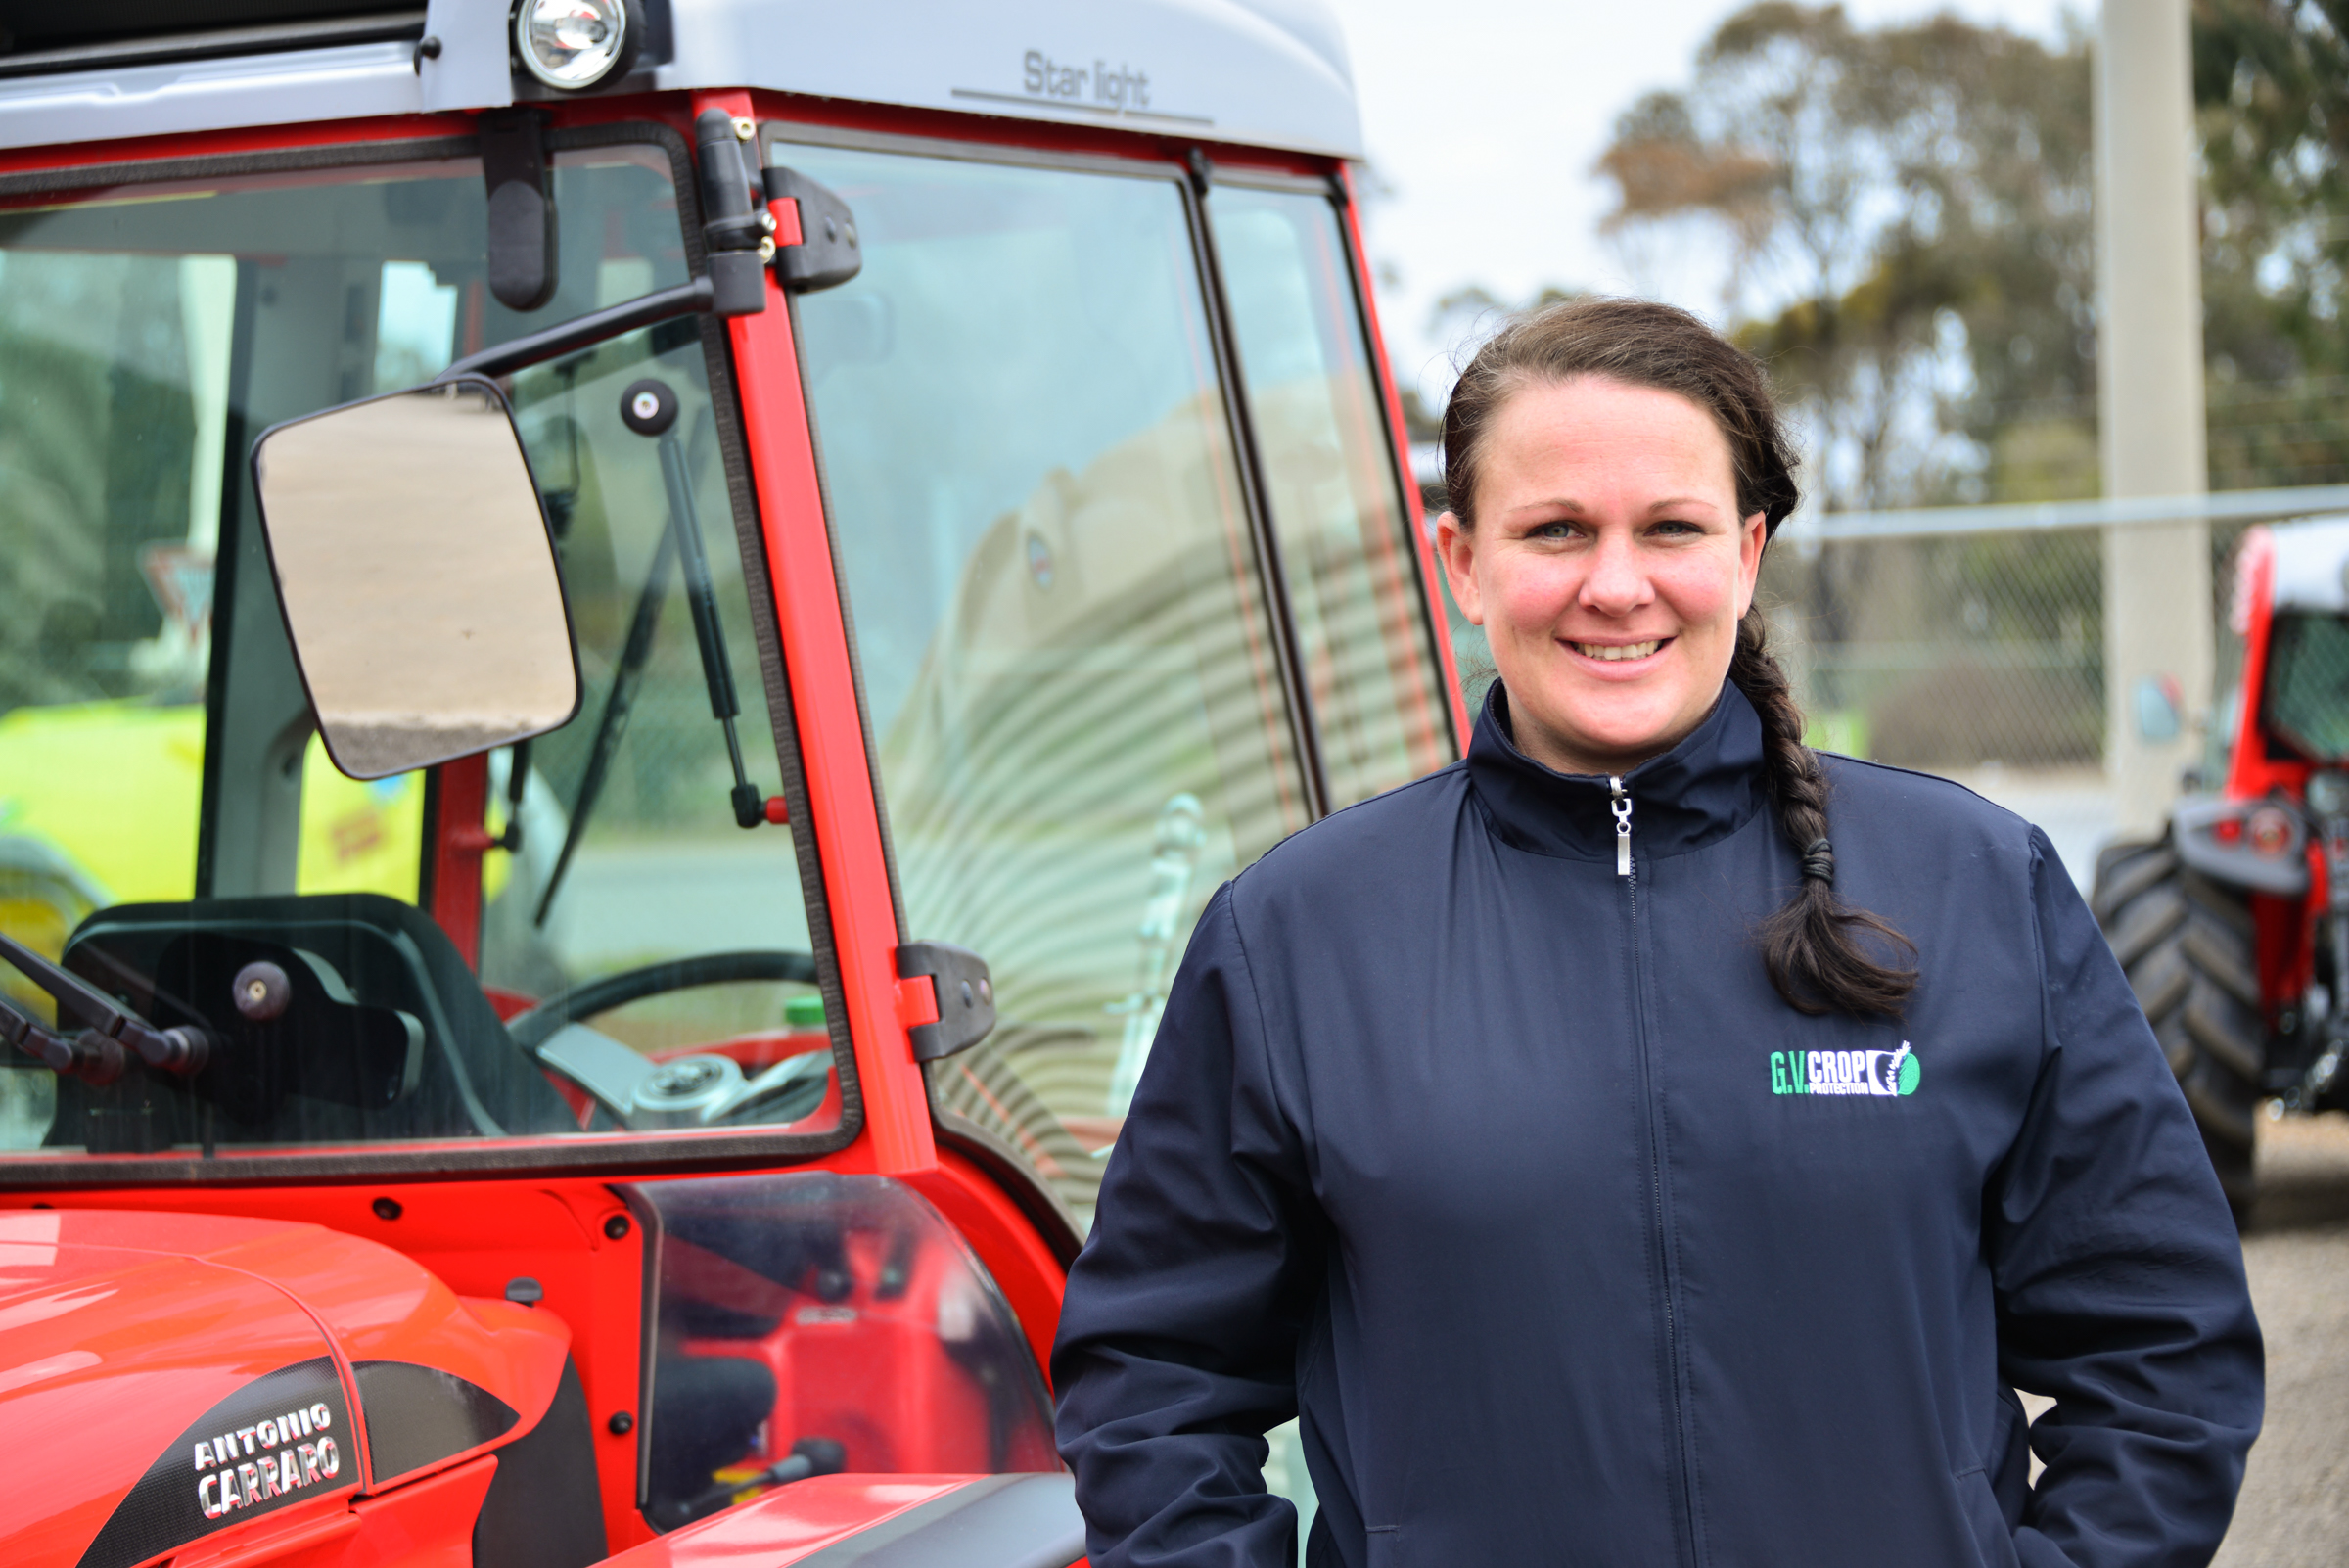 Elizabeth Mace, Field Officer for G.V. Crop Protection, Goulburn Valley, 2016, Source: Museums Victoria, Photographer: Tagen Baker